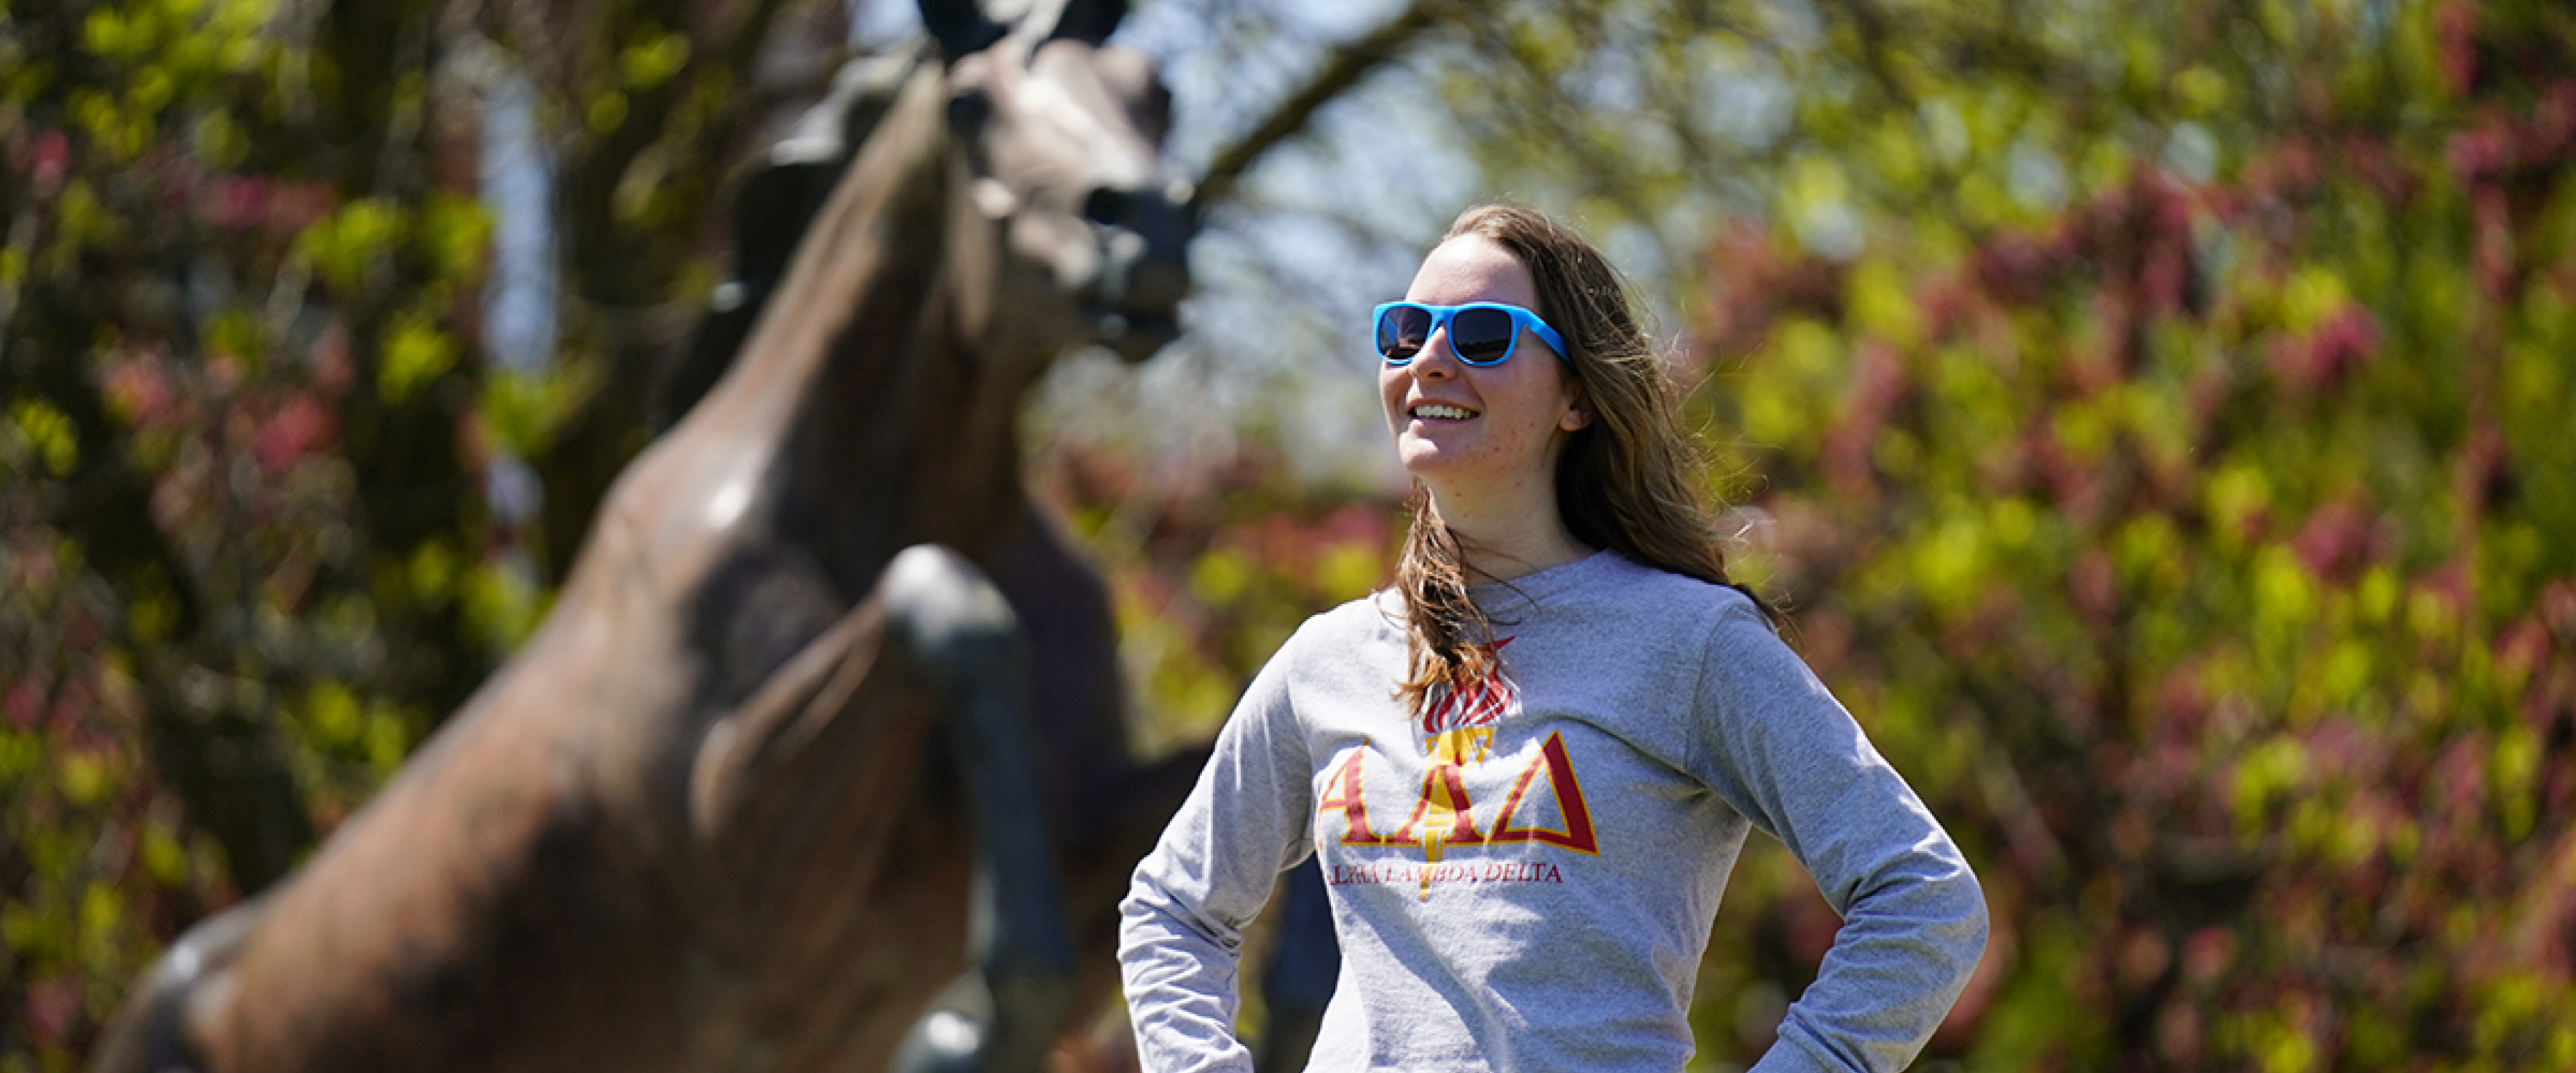 A student wearing an ALD shirt standing in front of the Bronco statue.